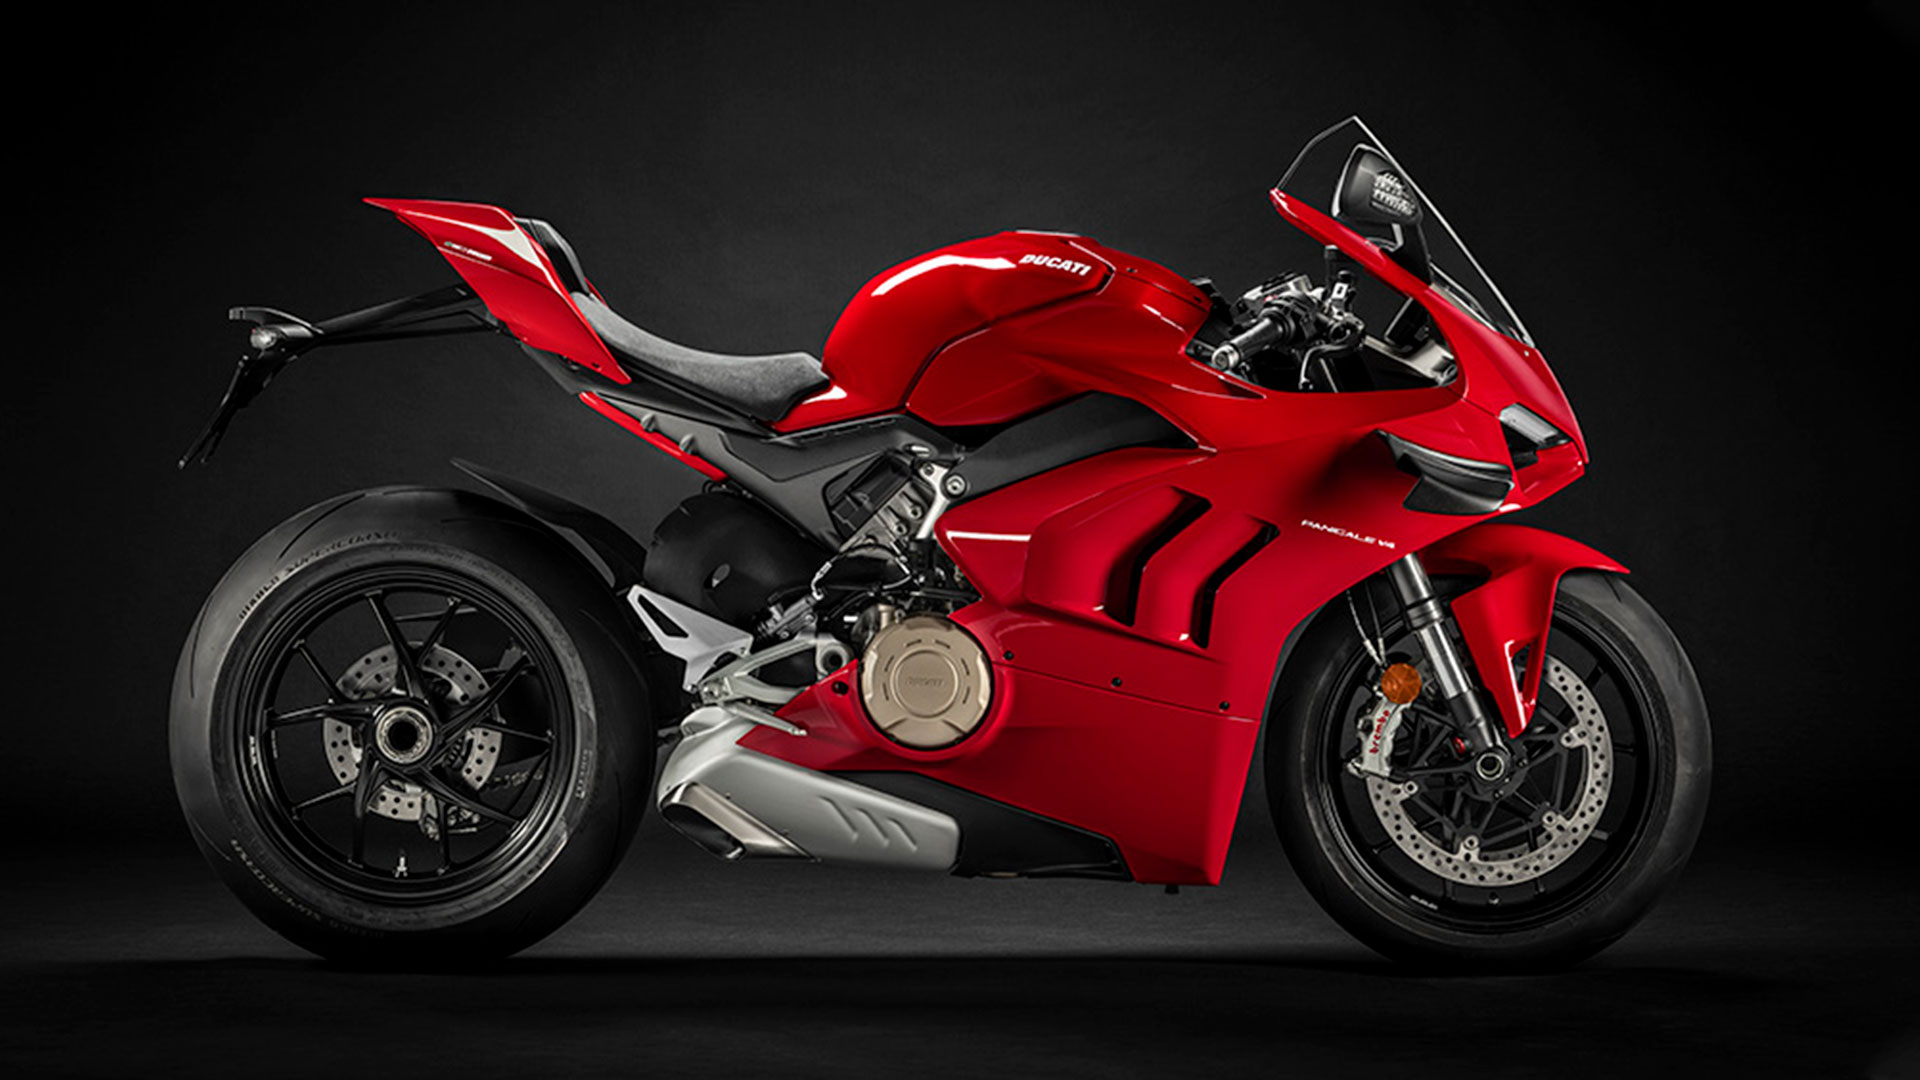 &laquo Panigale V4 &raquo  The Red Essence